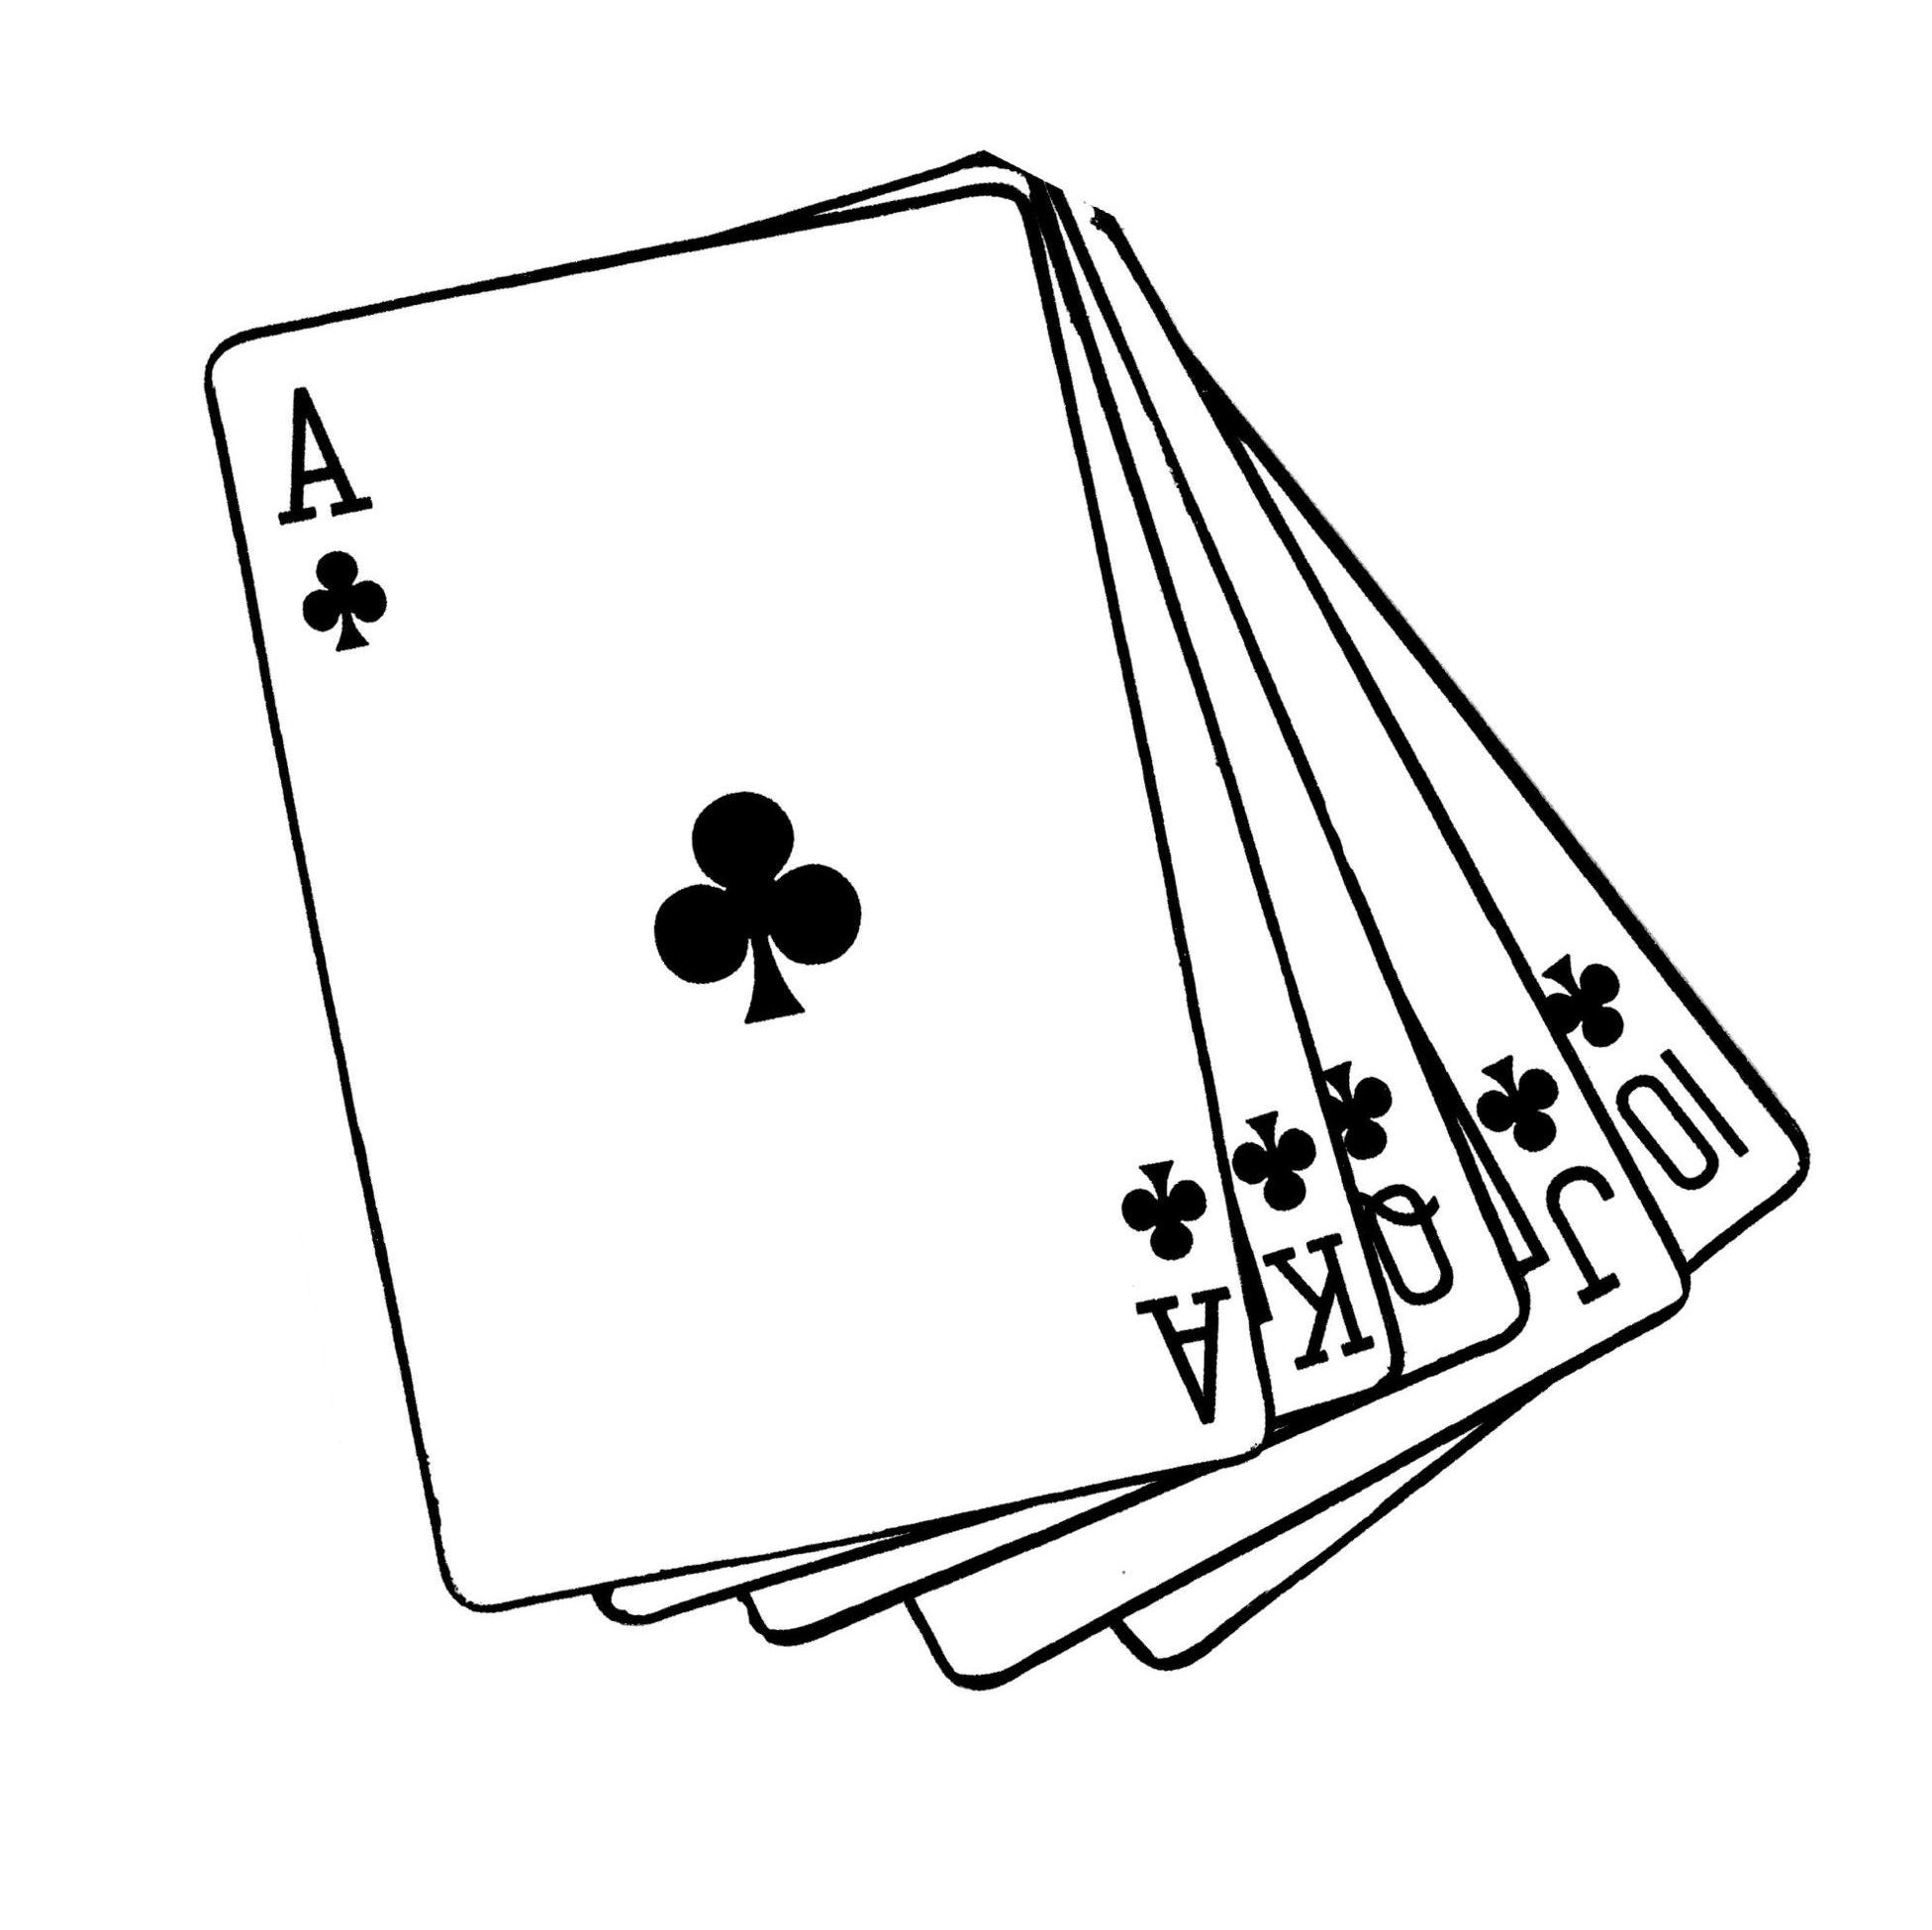 Line Art Card Design : Playing cards drawing at getdrawings free for